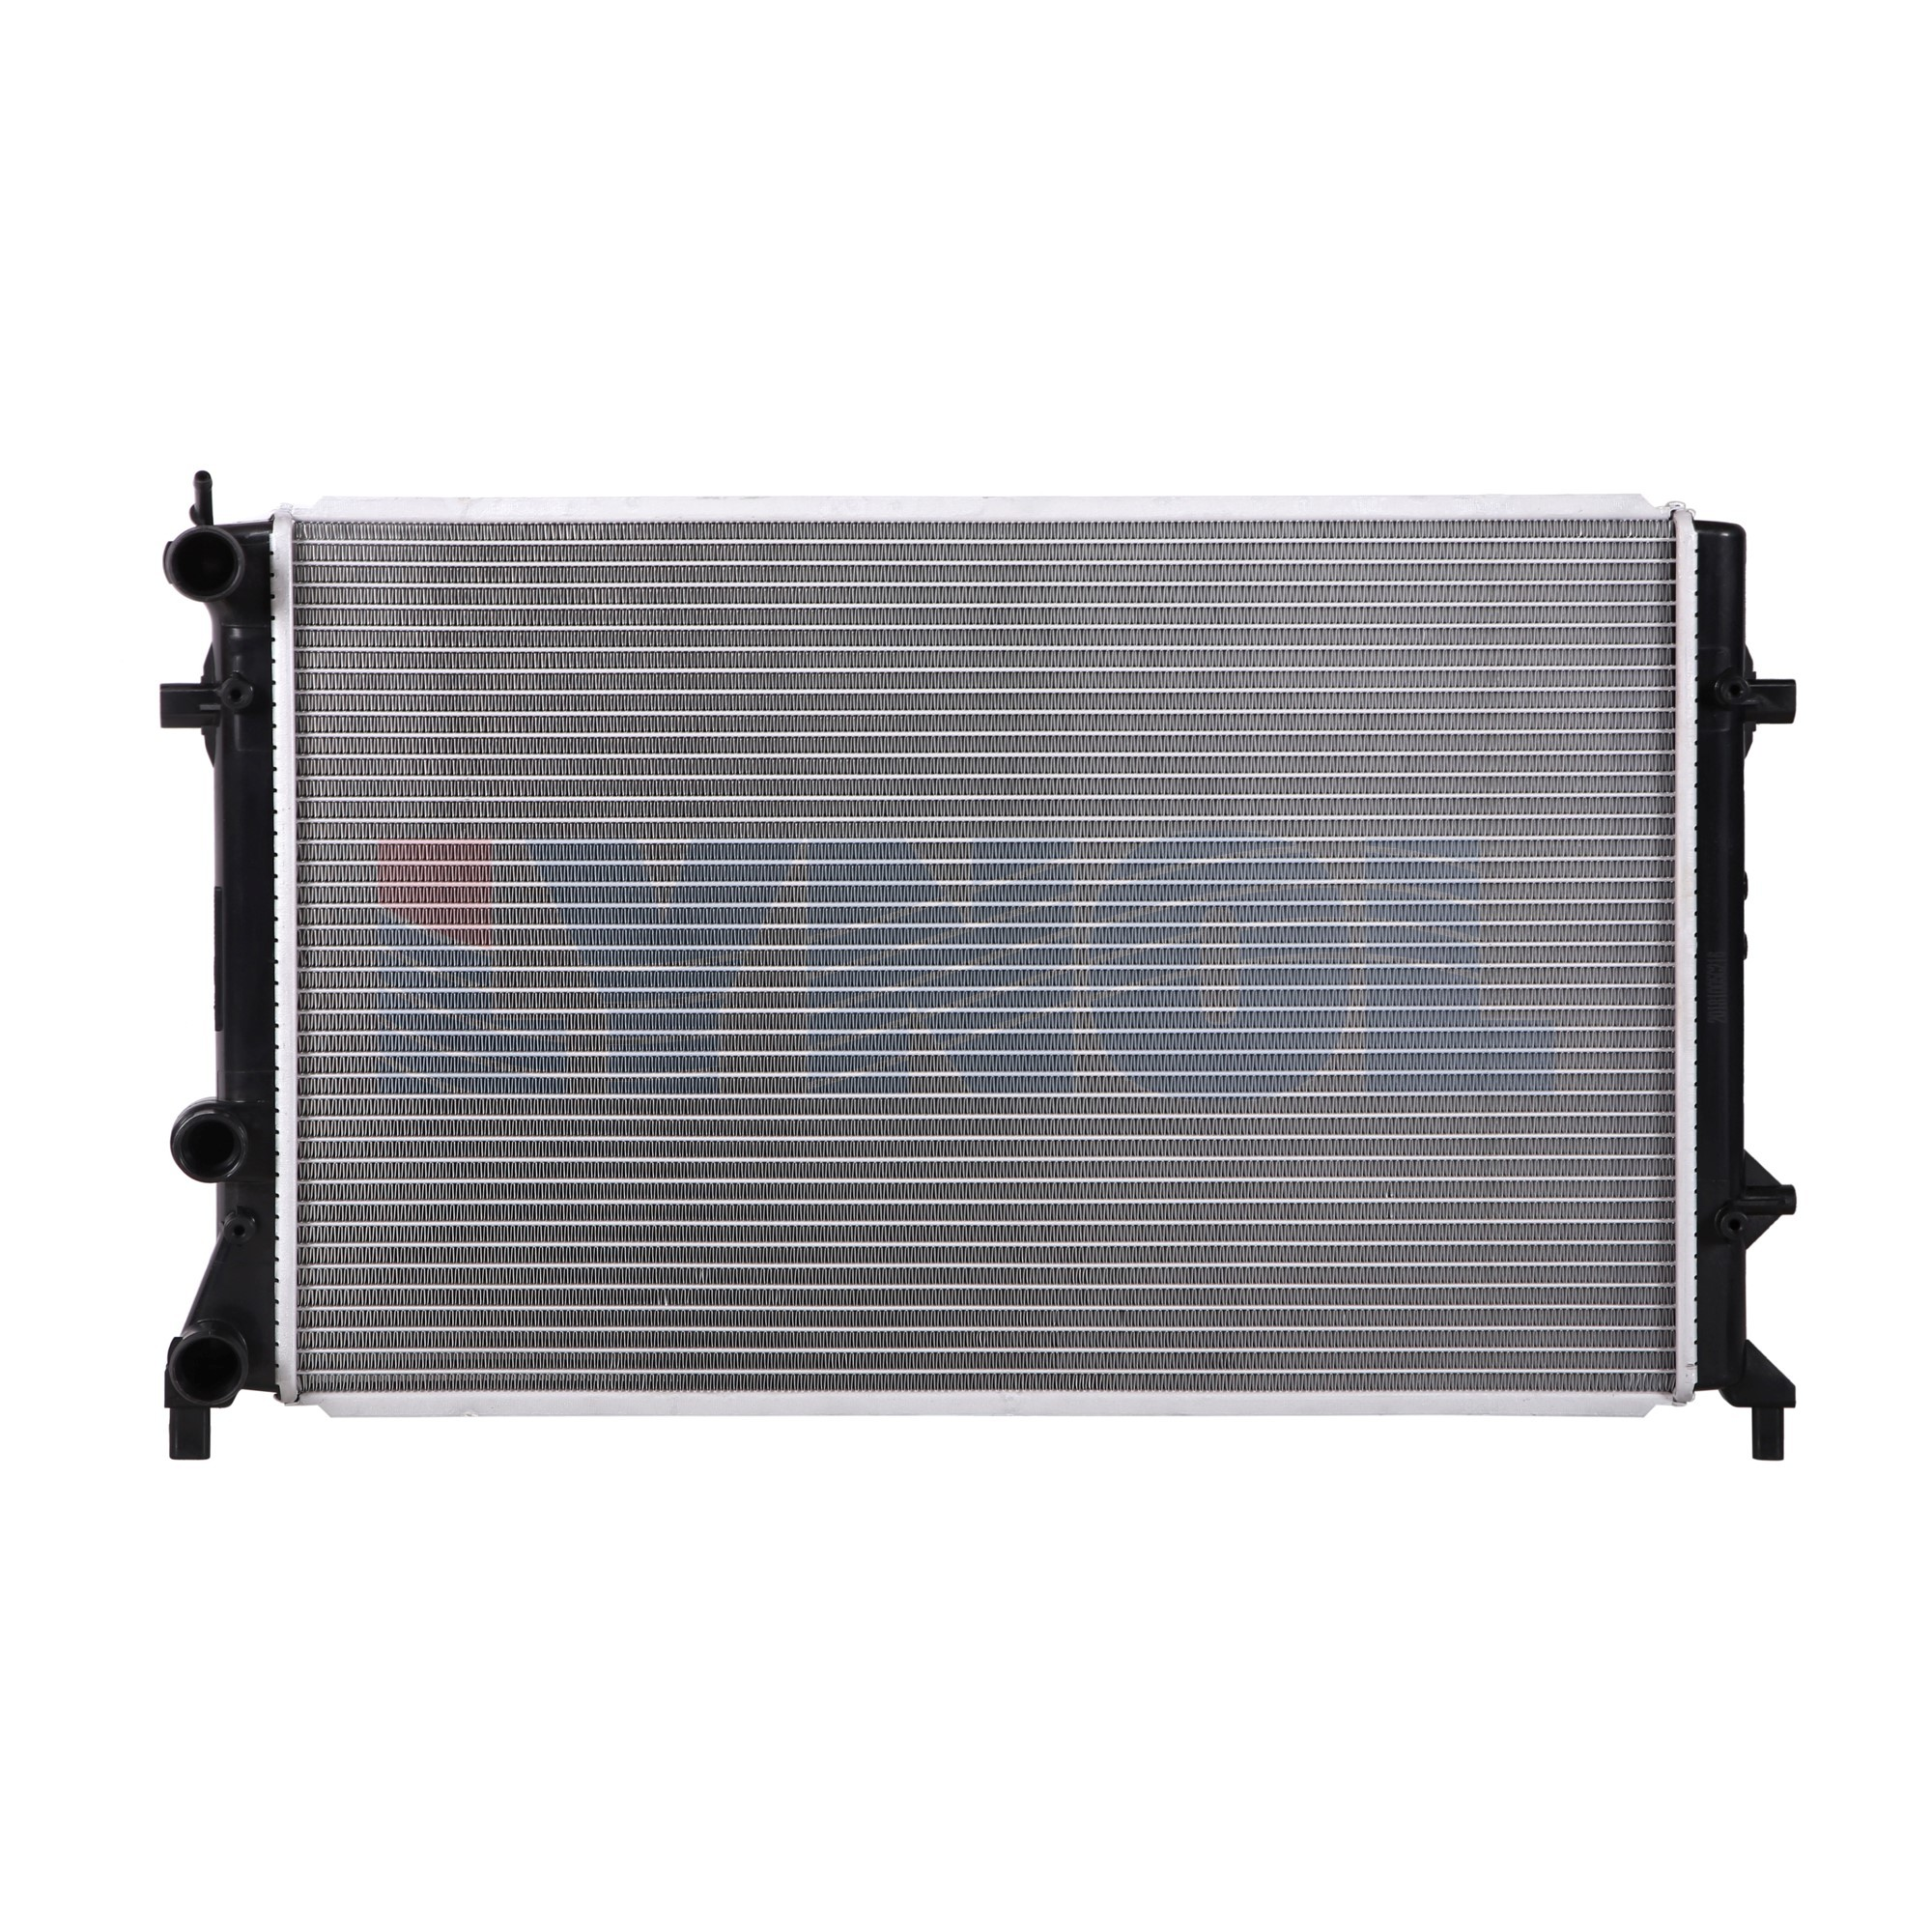 13215 - RADIATOR  - 11-15 VW Jetta 2.5L, 11-13 VW Golf 2.5L, 12-15 VW Beetle 2.5L